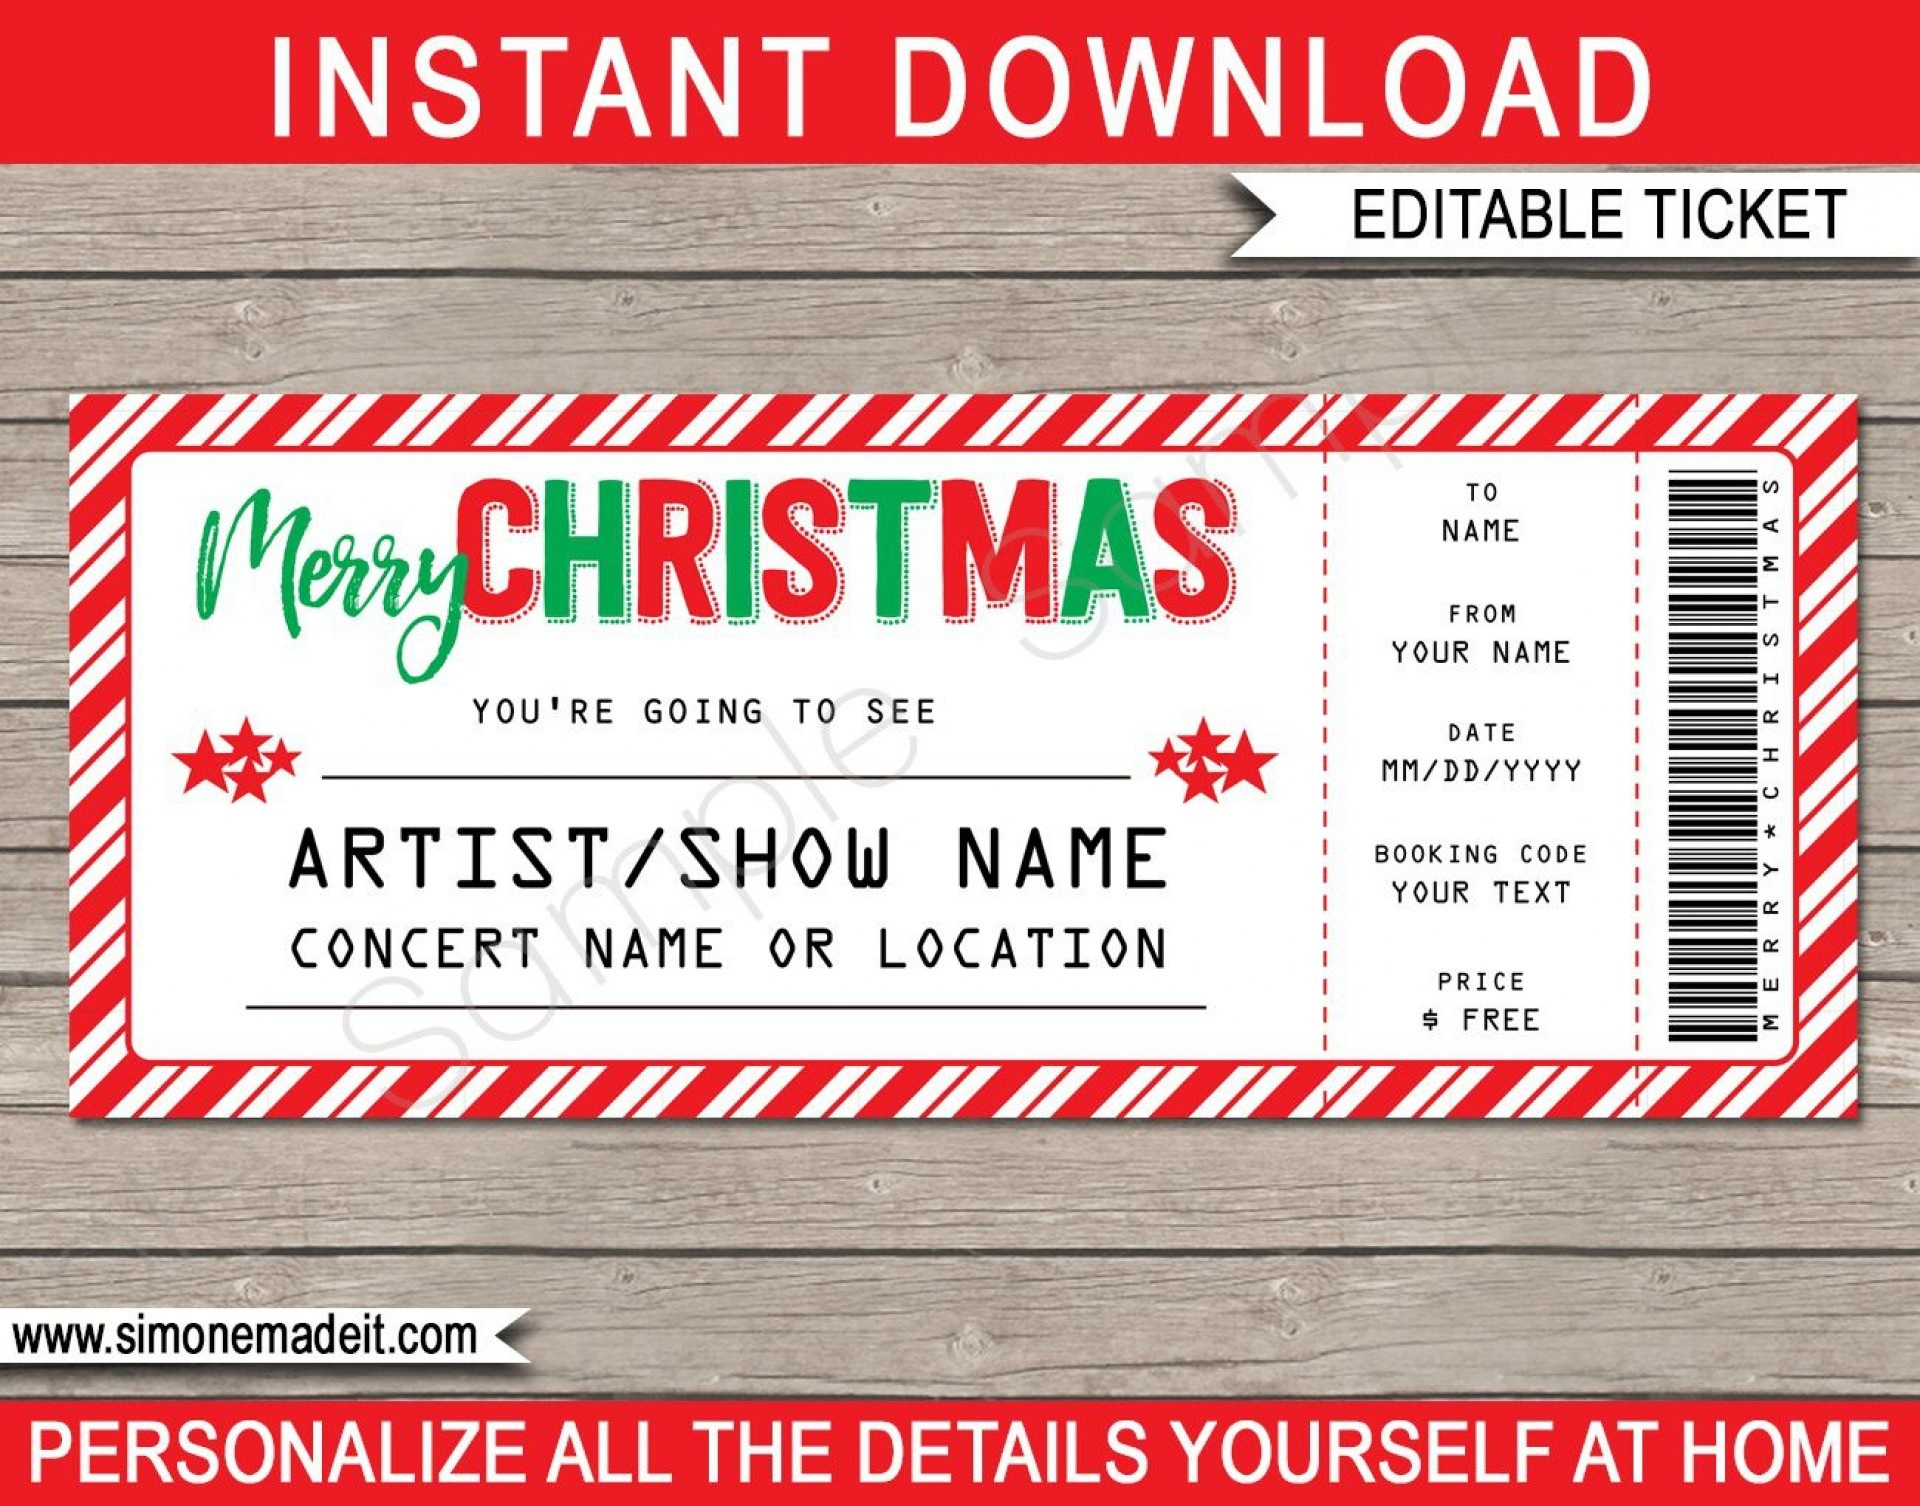 006 Simple Free Editable Concert Ticket Template Image  Psd WordFull